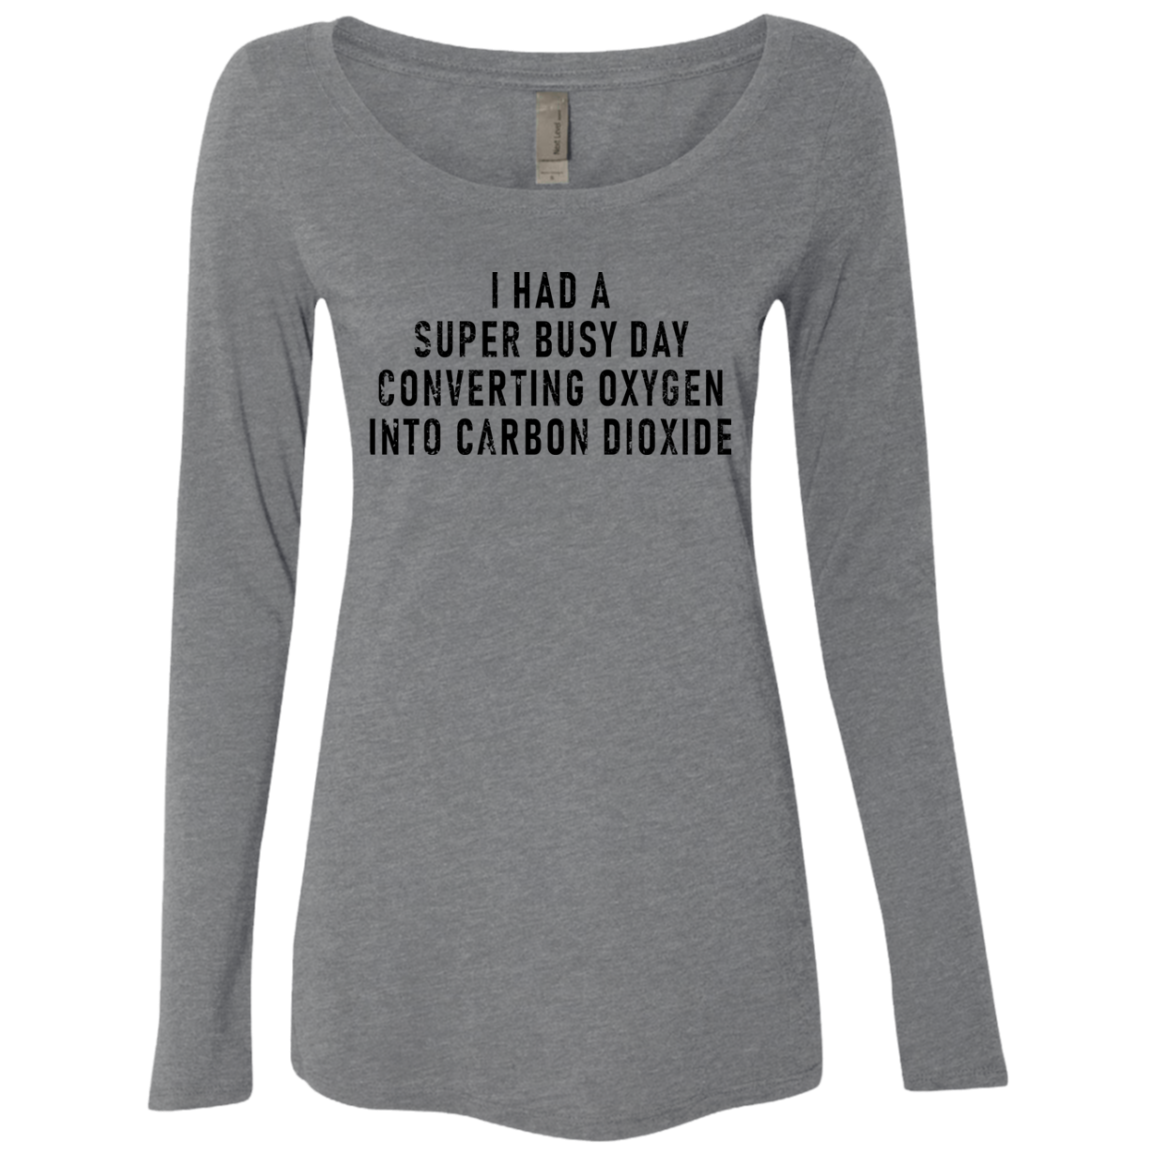 I Had A Super Busy Day Converting Oxigen Into Carbon Dioxide Women's Long Sleeve Tee